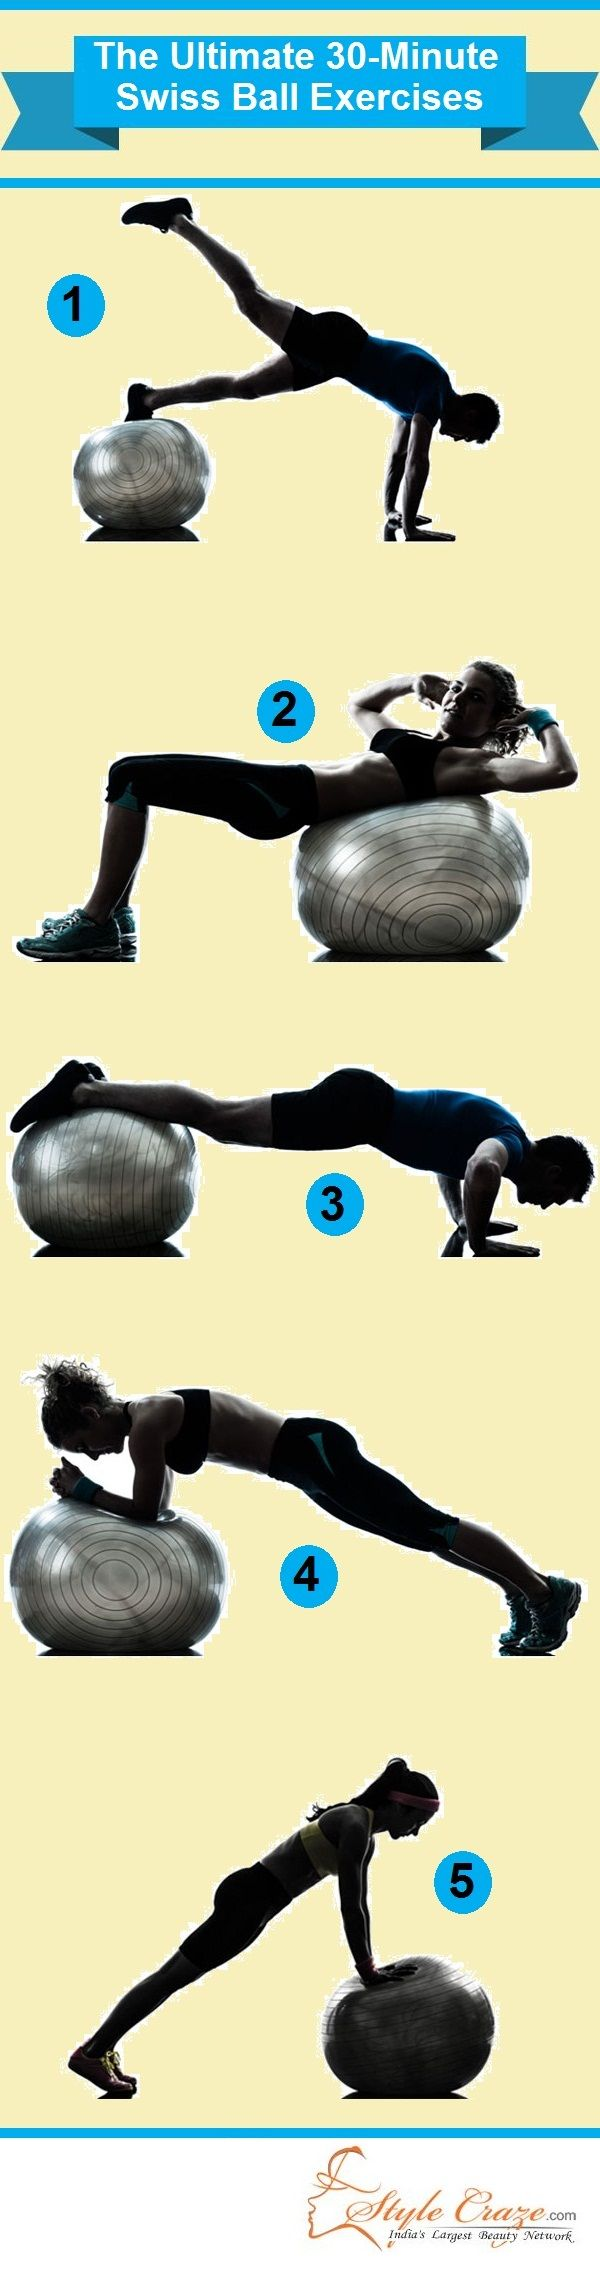 10 Effective Swiss Ball Exercises And Their Benefits